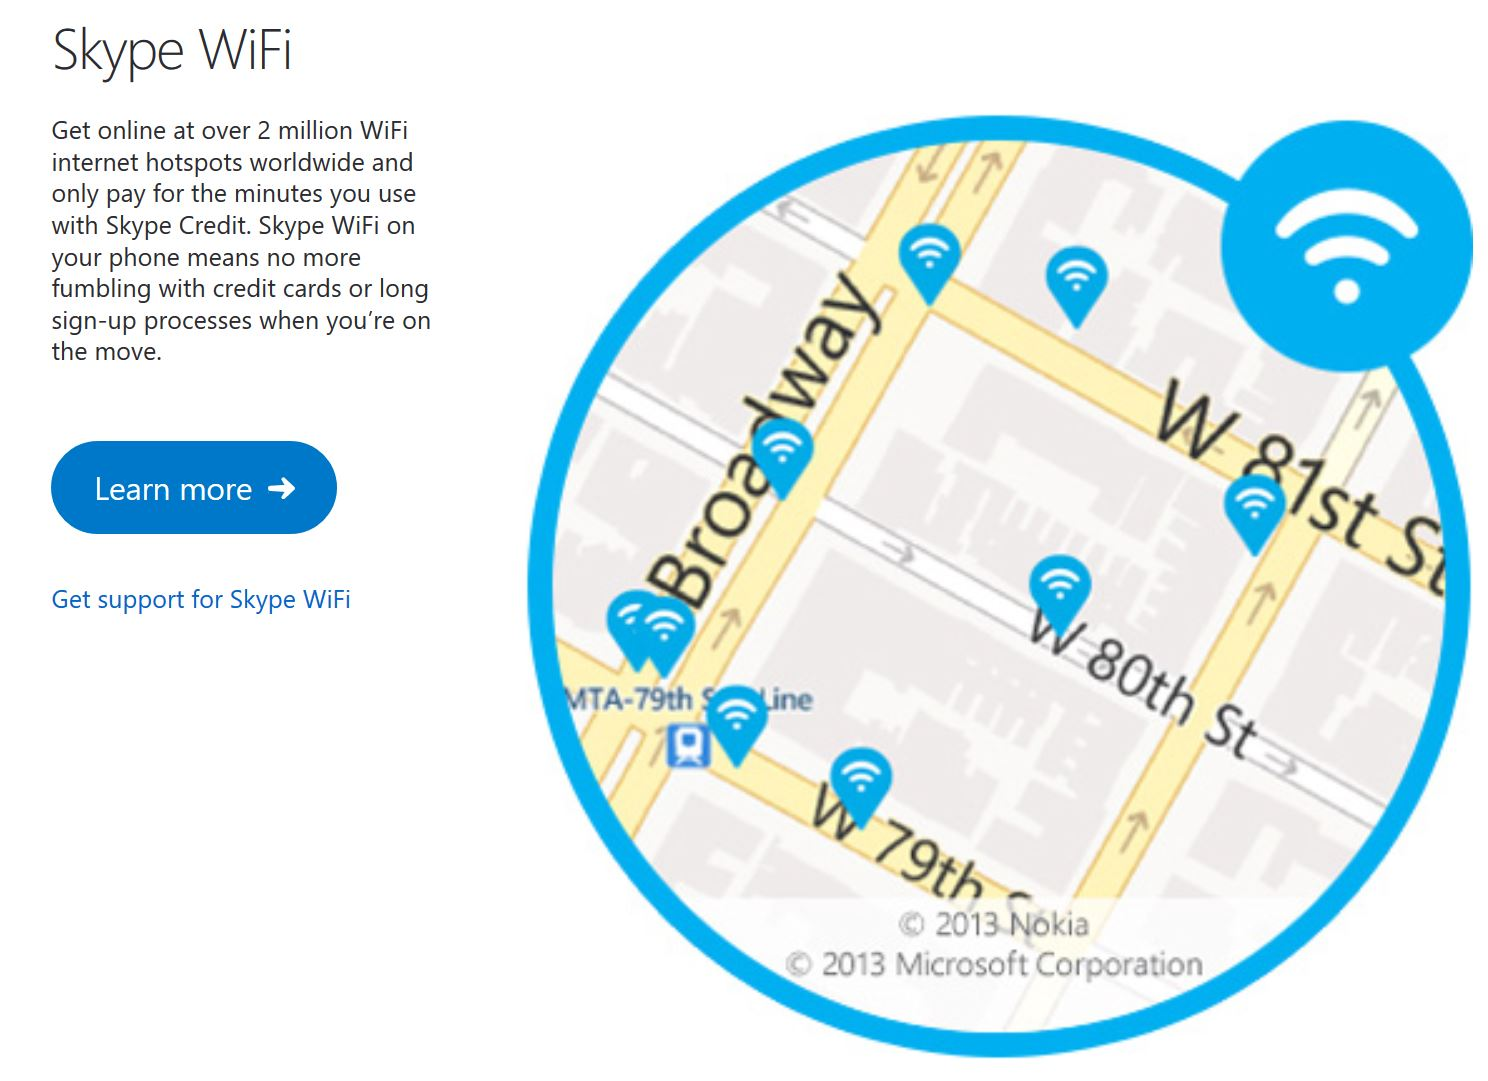 hight resolution of microsoft today announced that they are discontinuing skype wifi service from march 31st 2017 users won t be able to download the skype wifi application